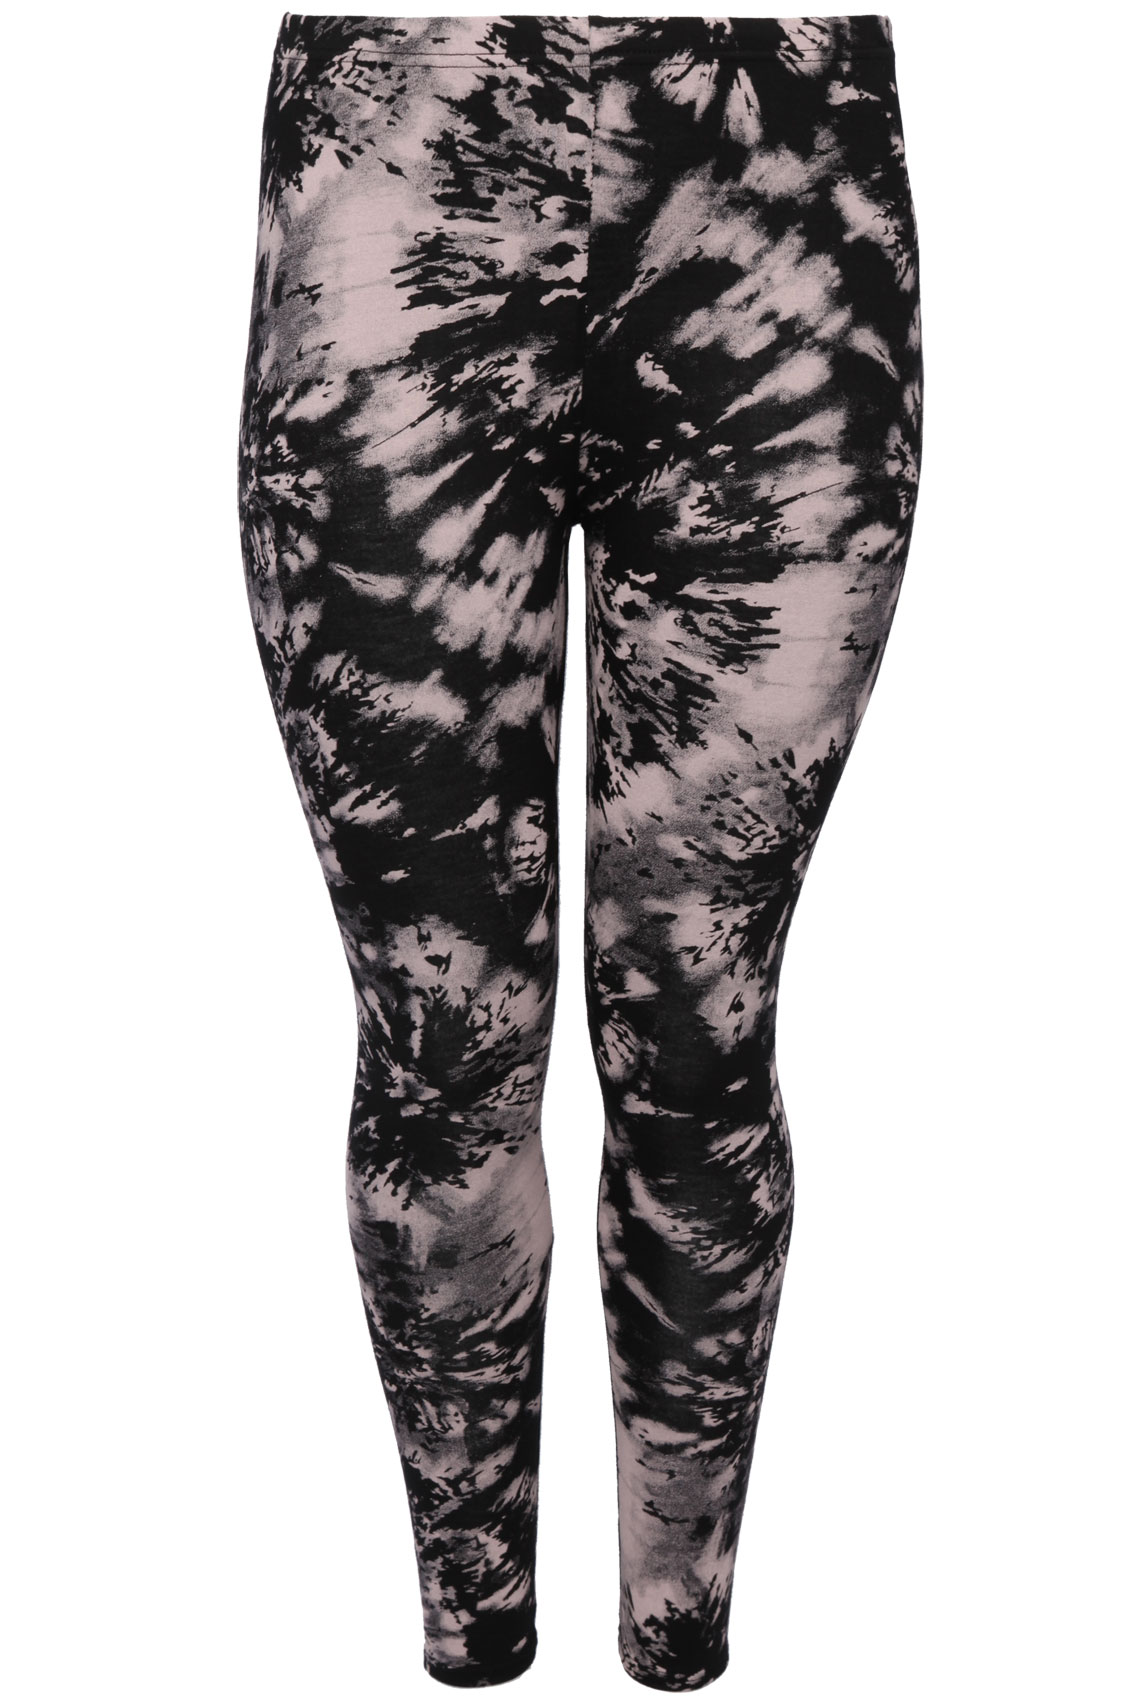 Black And Nude Pink Smudge Print Full Length Leggings Plus -1014